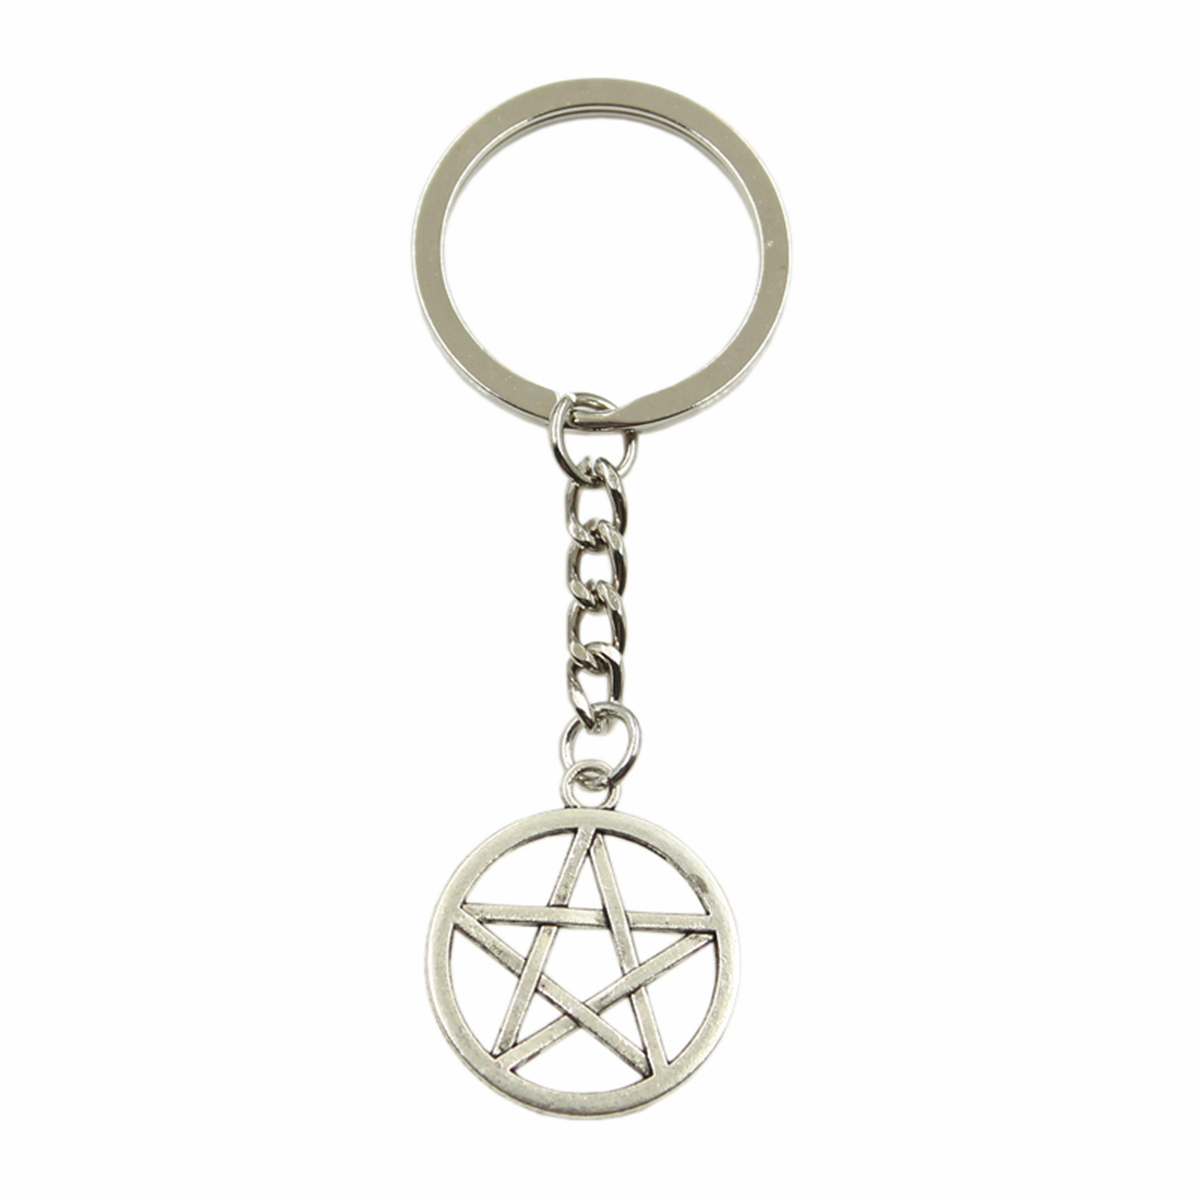 Factory Price Star Pentagram Pendant Key Ring Metal Chain Silver Color Men Car Gift Souvenirs Keychain Dropshipping